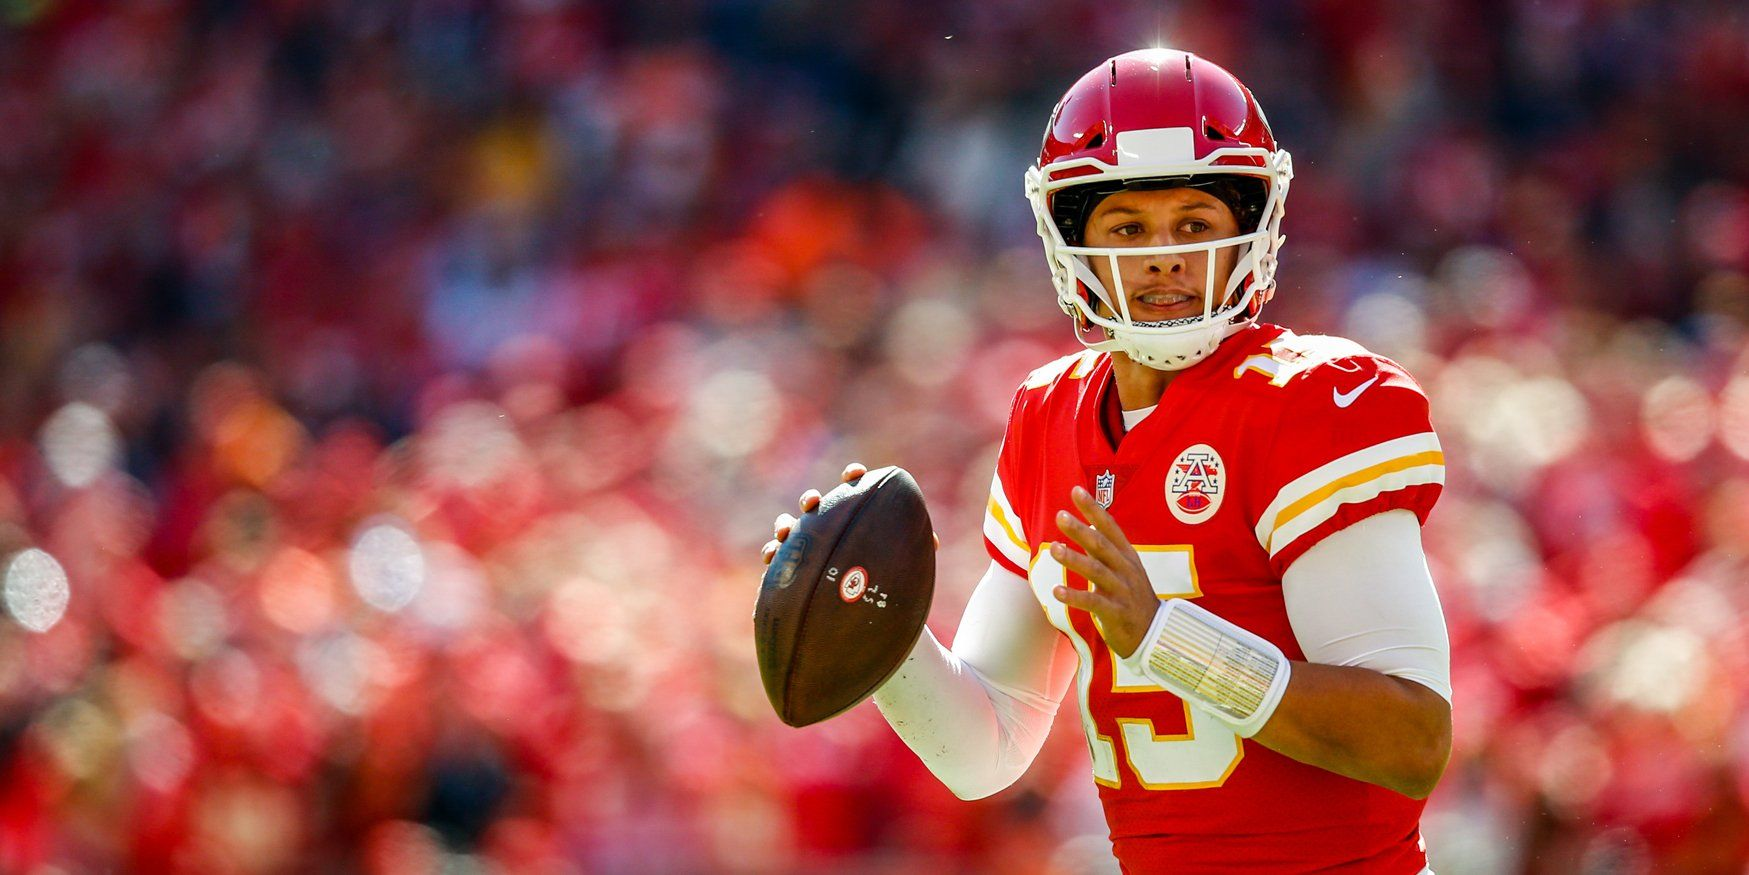 The 4 Remaining Nfl Teams Have One Thing In Common And It May Be A Sign Of Where The League Is Headed Nfl Teams Nfl Chiefs Football